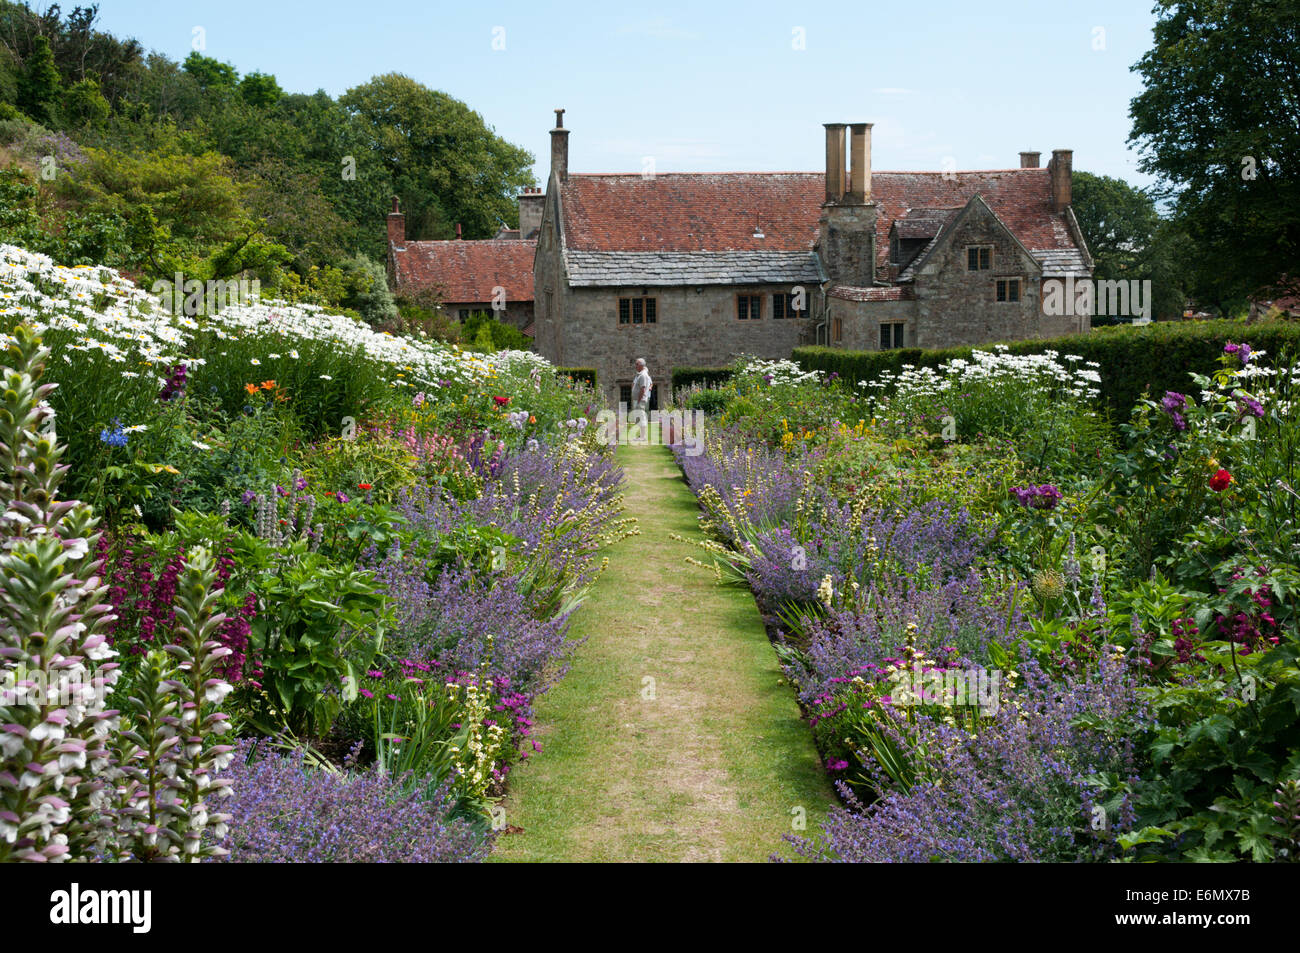 The double herbaceous border at Mottistone Manor on the Isle of Wight. - Stock Image